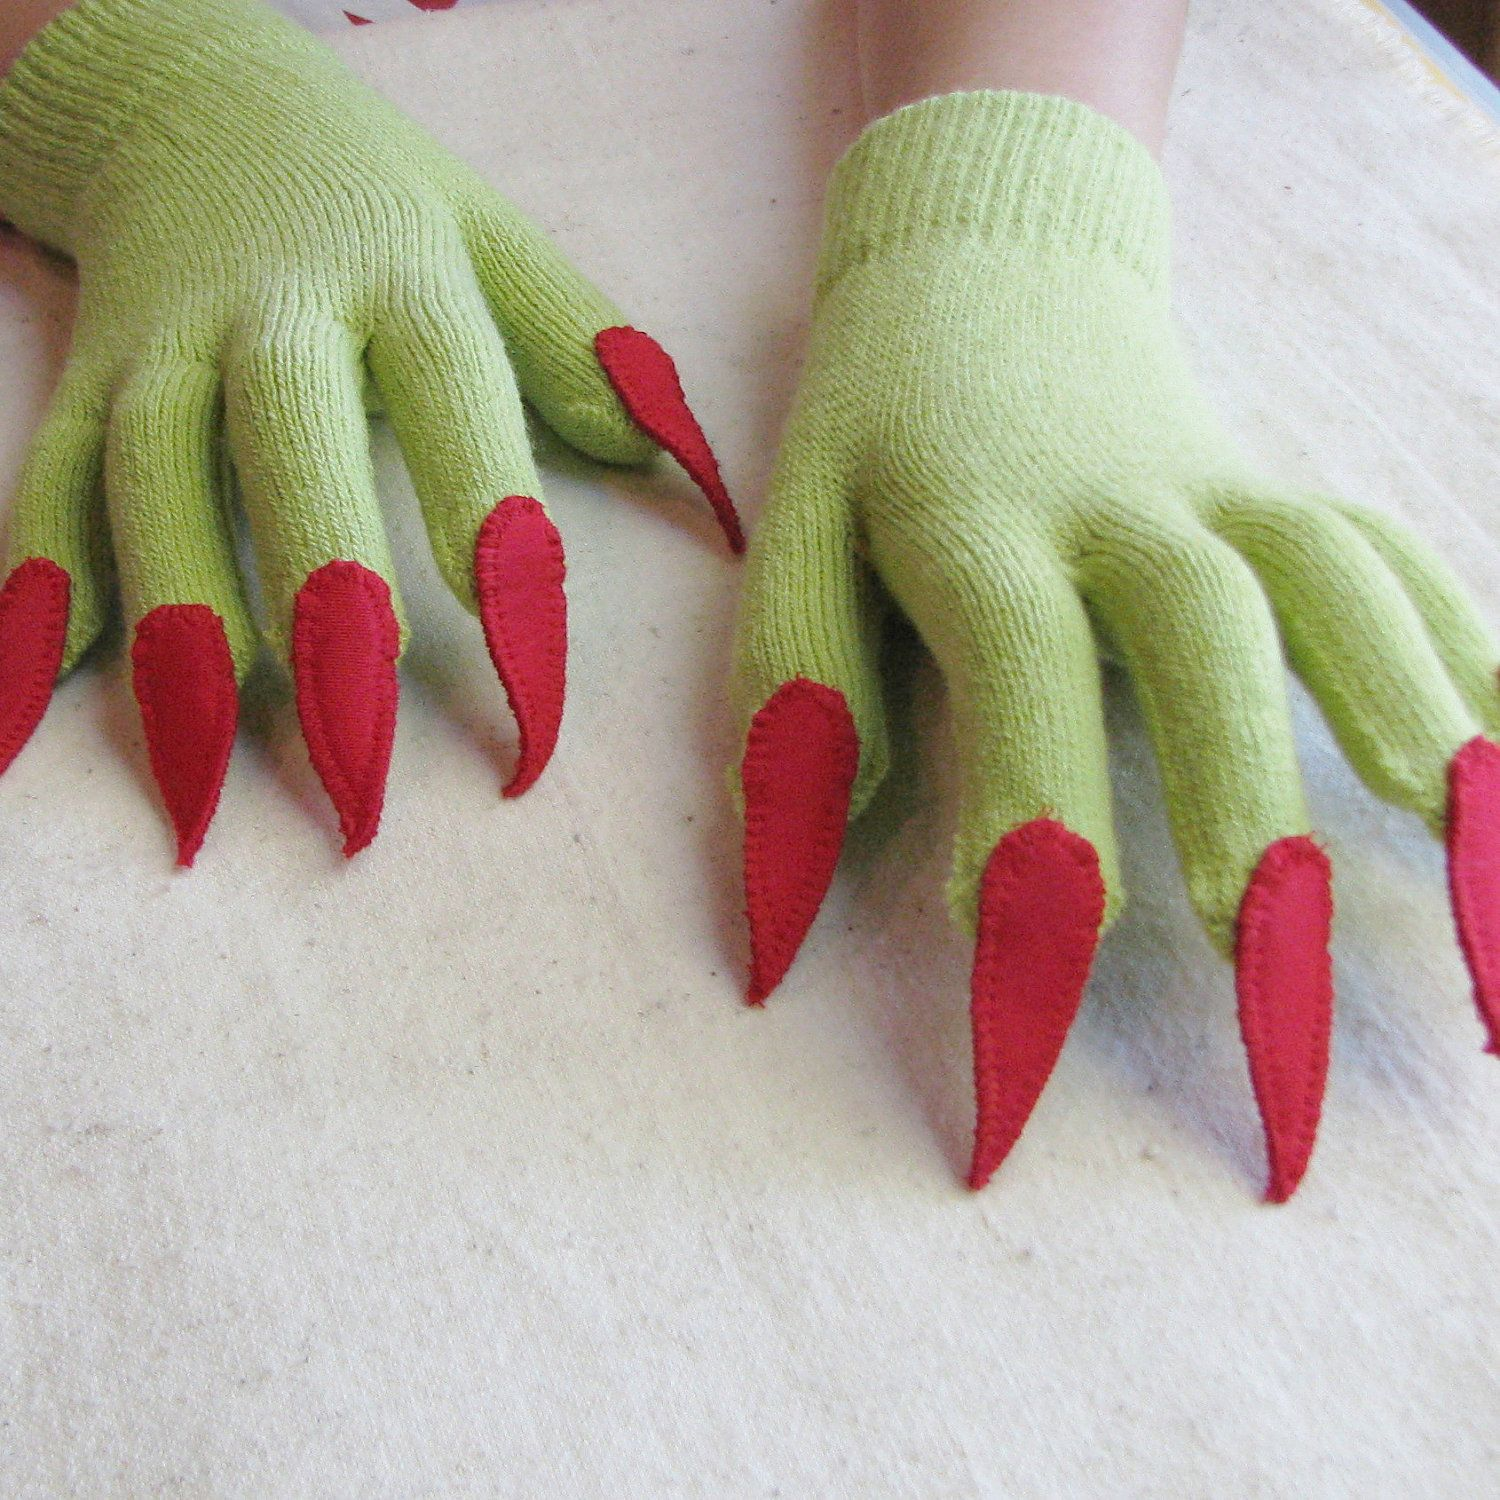 Decoraciones De Halloween Faciles Gloves With Claws Green And Red For Halloween Costume Or